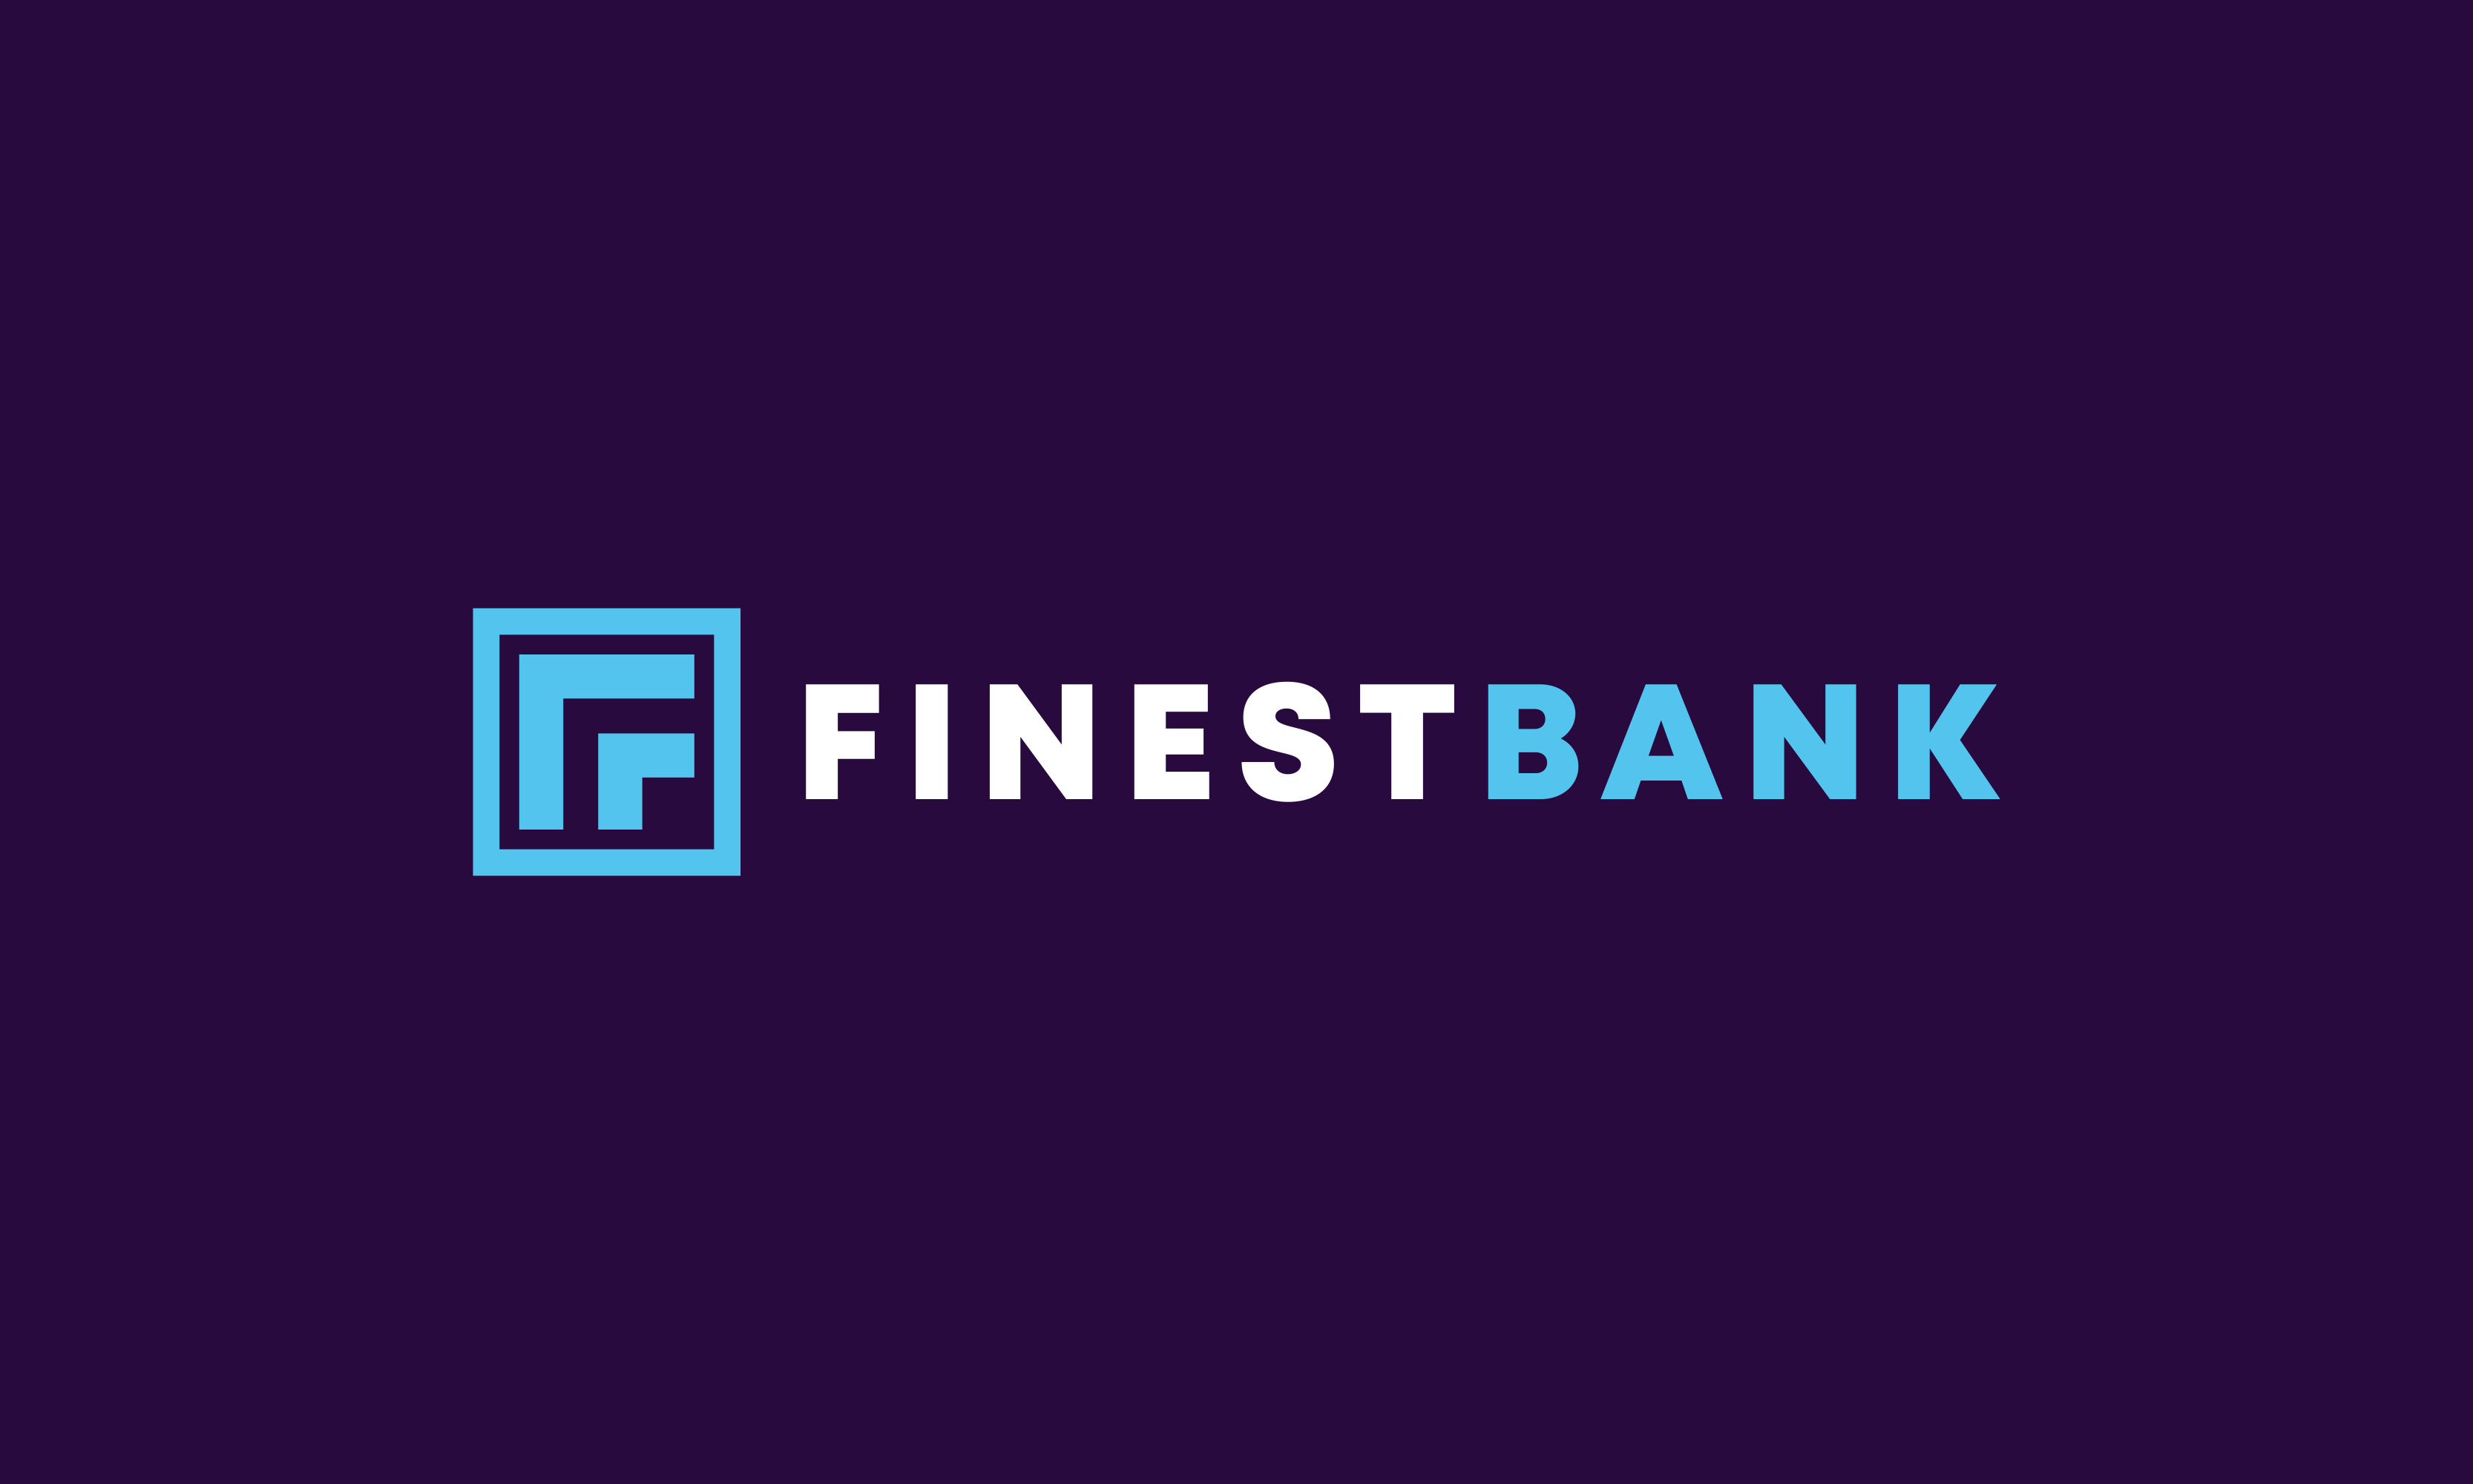 Finestbank